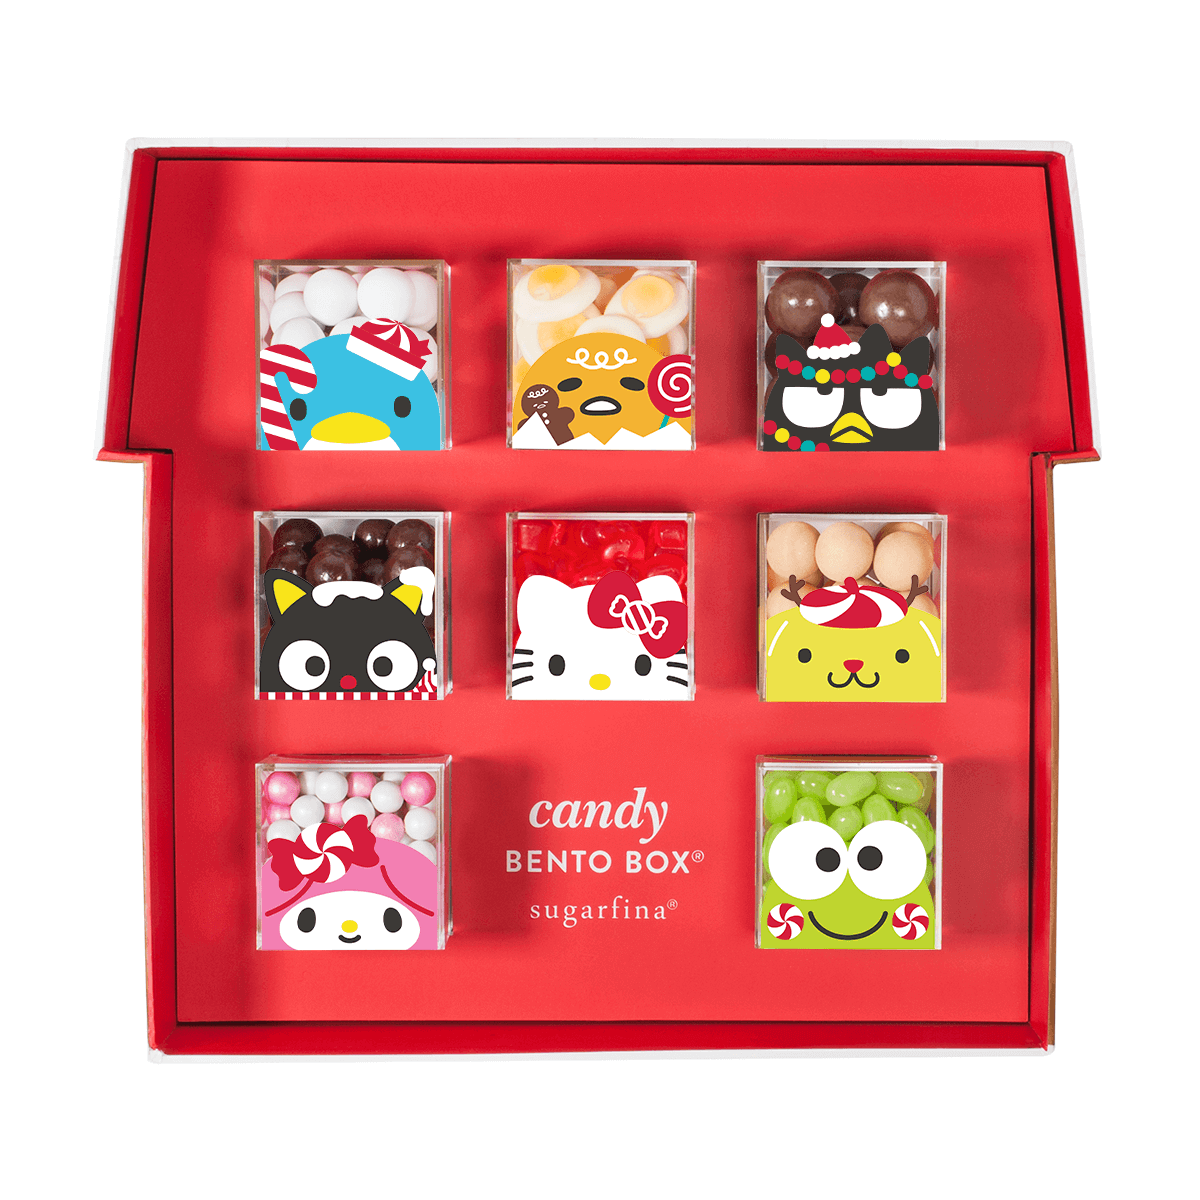 Cool gift ideas for tween girls: Hello Kitty Candy Bento from Sugarfina